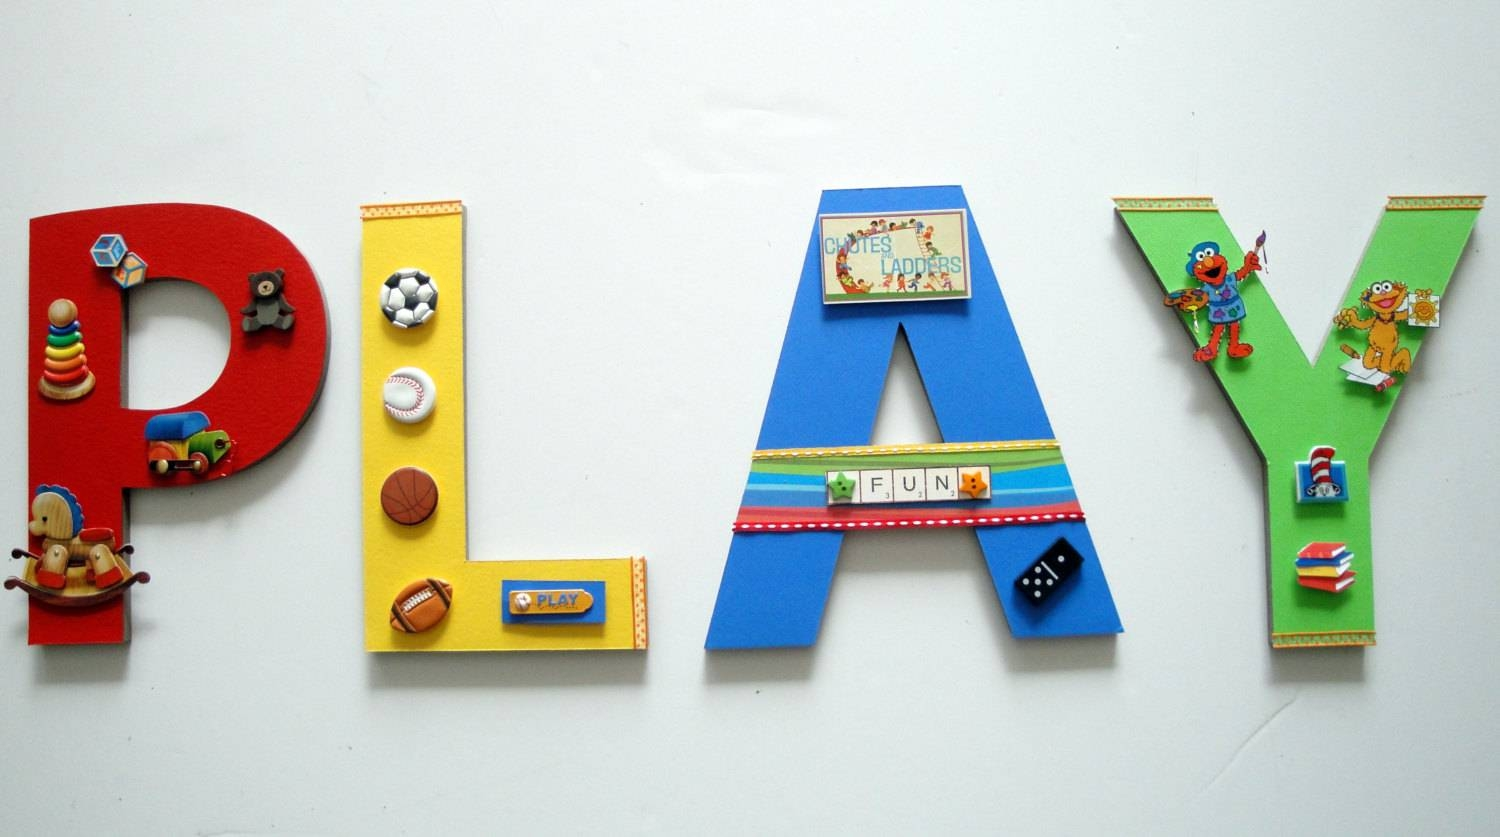 Playroom Wall Letters Playroom Wall Art Toys And Games Wall Intended For Recent Playroom Wall Art (View 2 of 30)